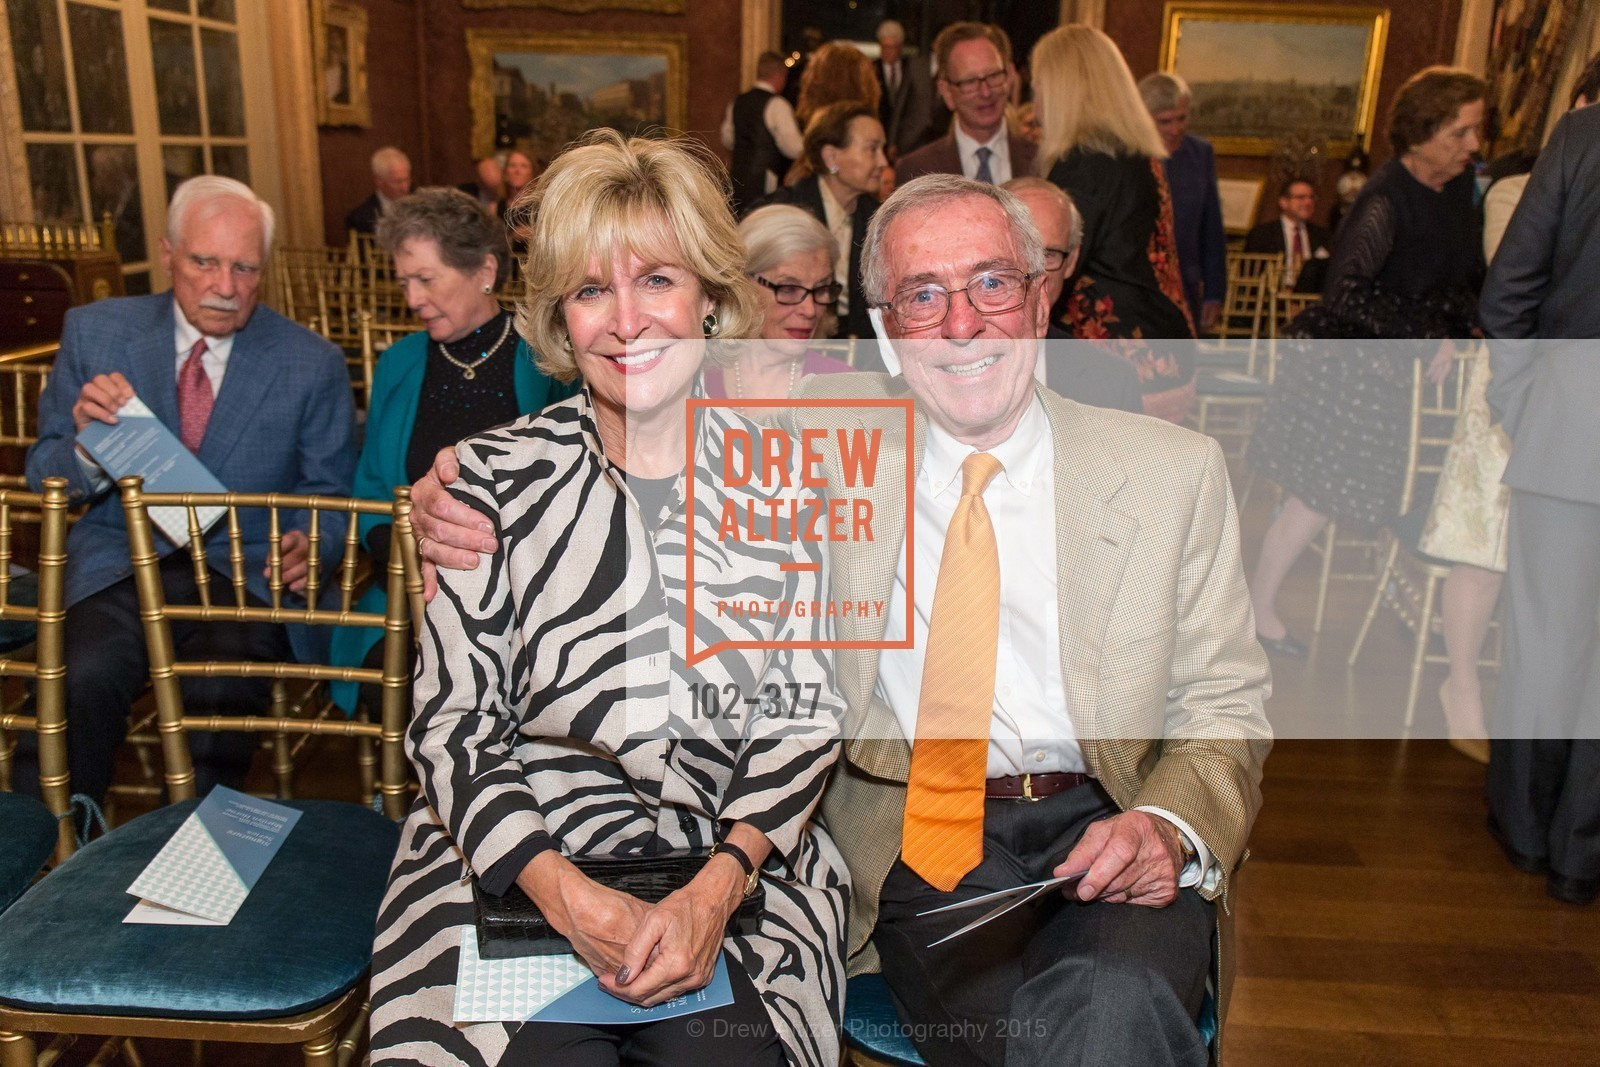 Jan Buckley, JIm Buckley, Ann and Gordon Getty Host SF Conservatory of Music with Marilyn Horne, Private Residence, October 15th, 2015,Drew Altizer, Drew Altizer Photography, full-service agency, private events, San Francisco photographer, photographer california